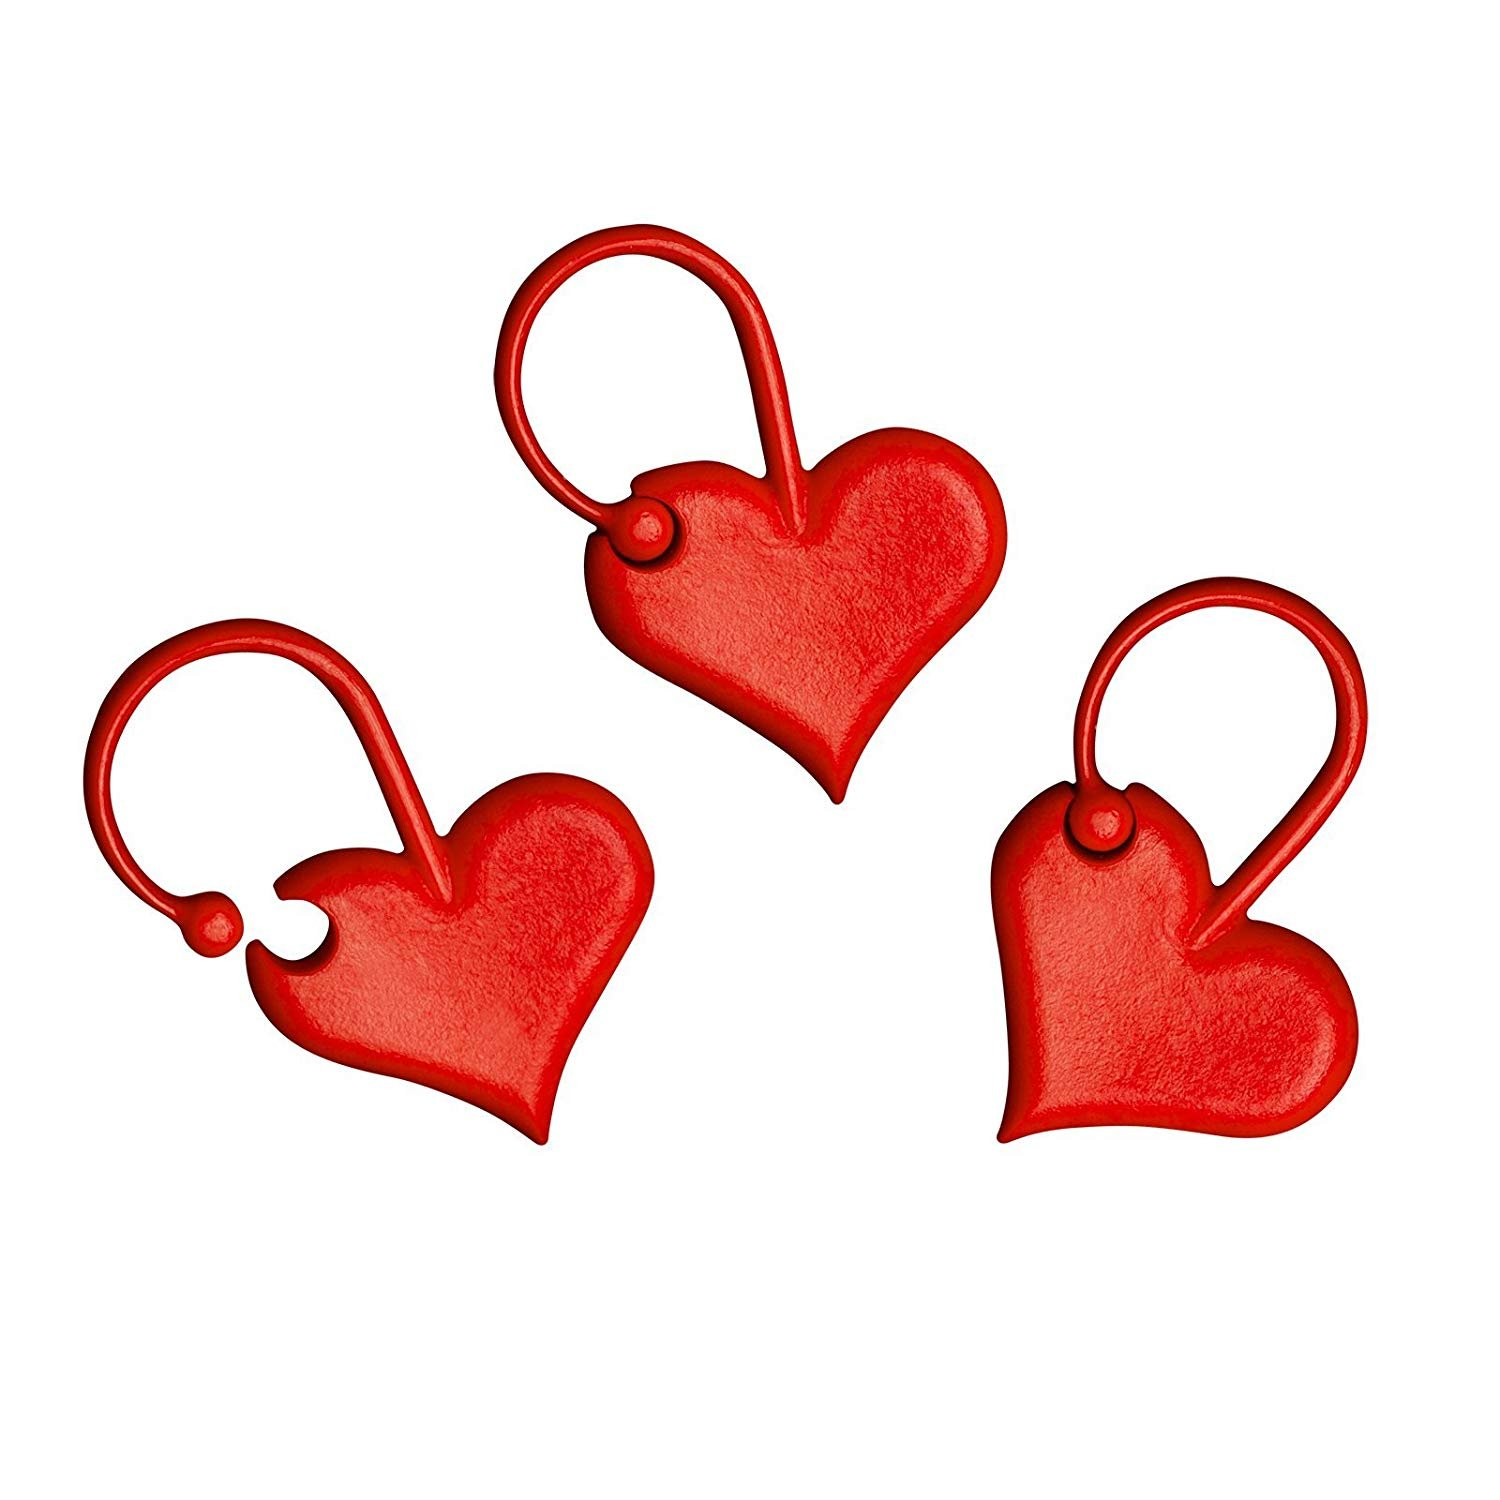 addiLove Stitch Marker Heart (25)